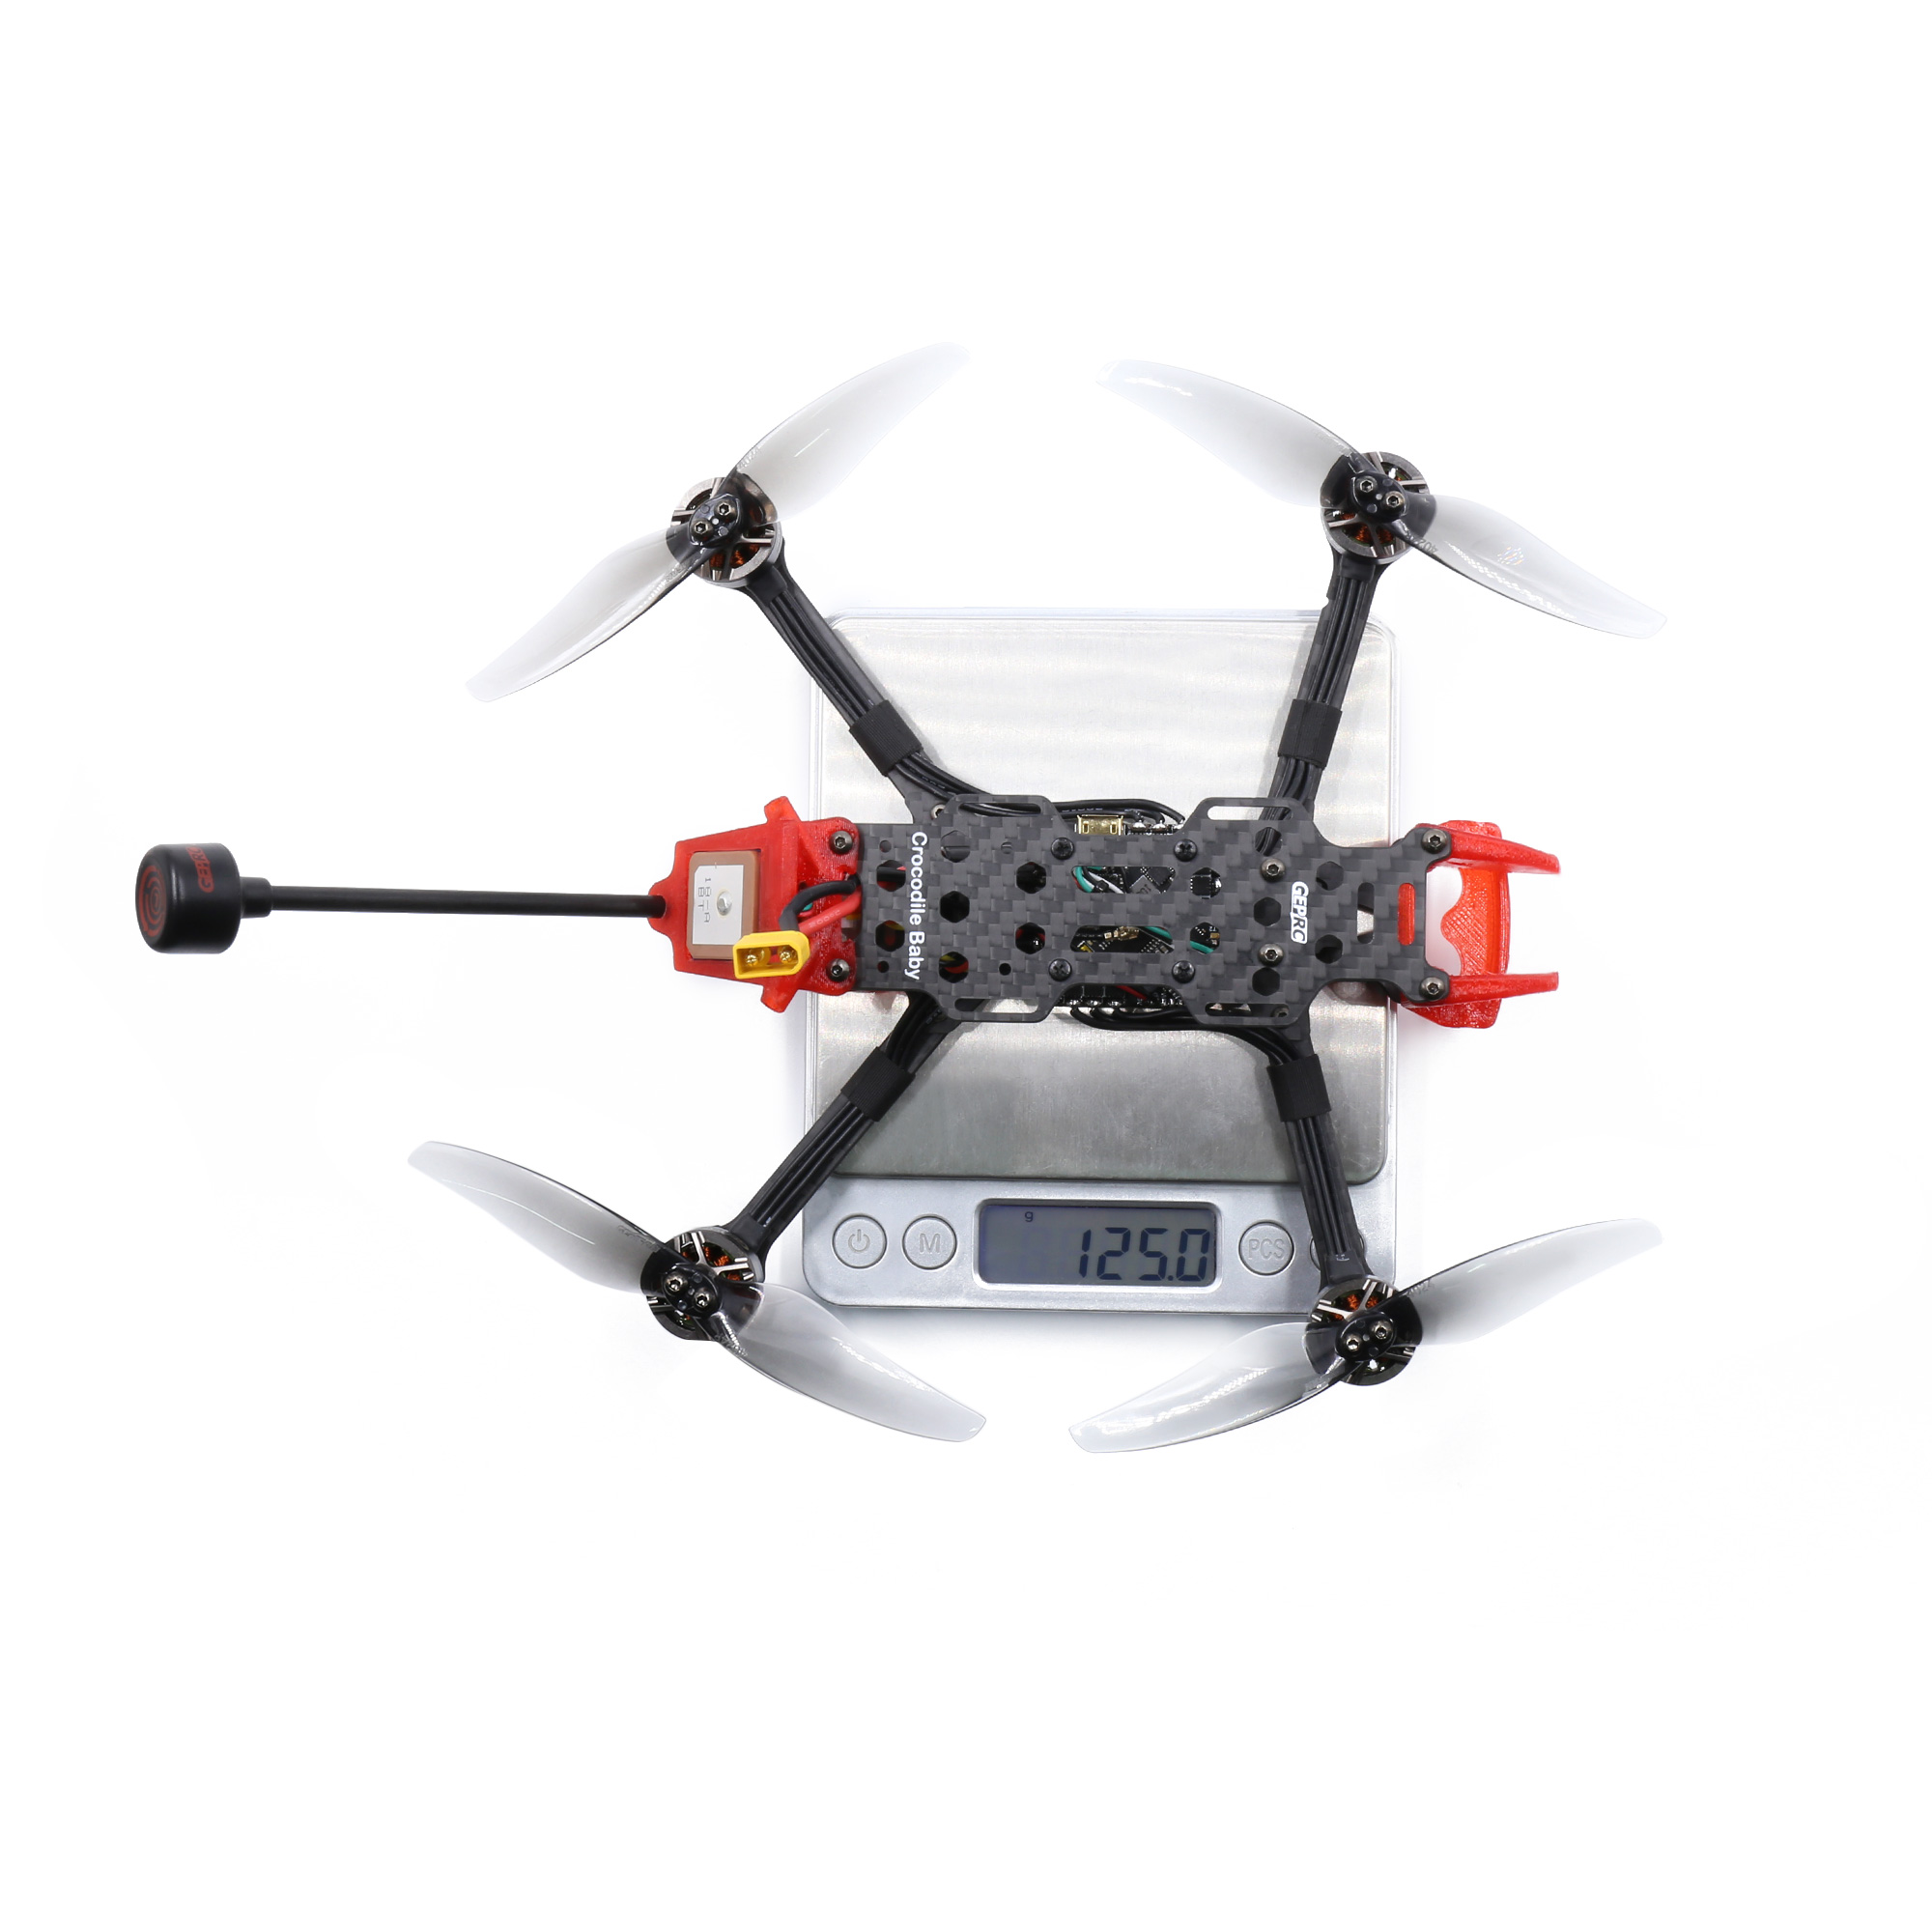 GEPRC Crocodile Baby 4 Inch 4S LR Micro Long Range FPV Racing Drone PNP/BNF Without FPV System F4 FC 20A ESC 1404 2750KV Motor